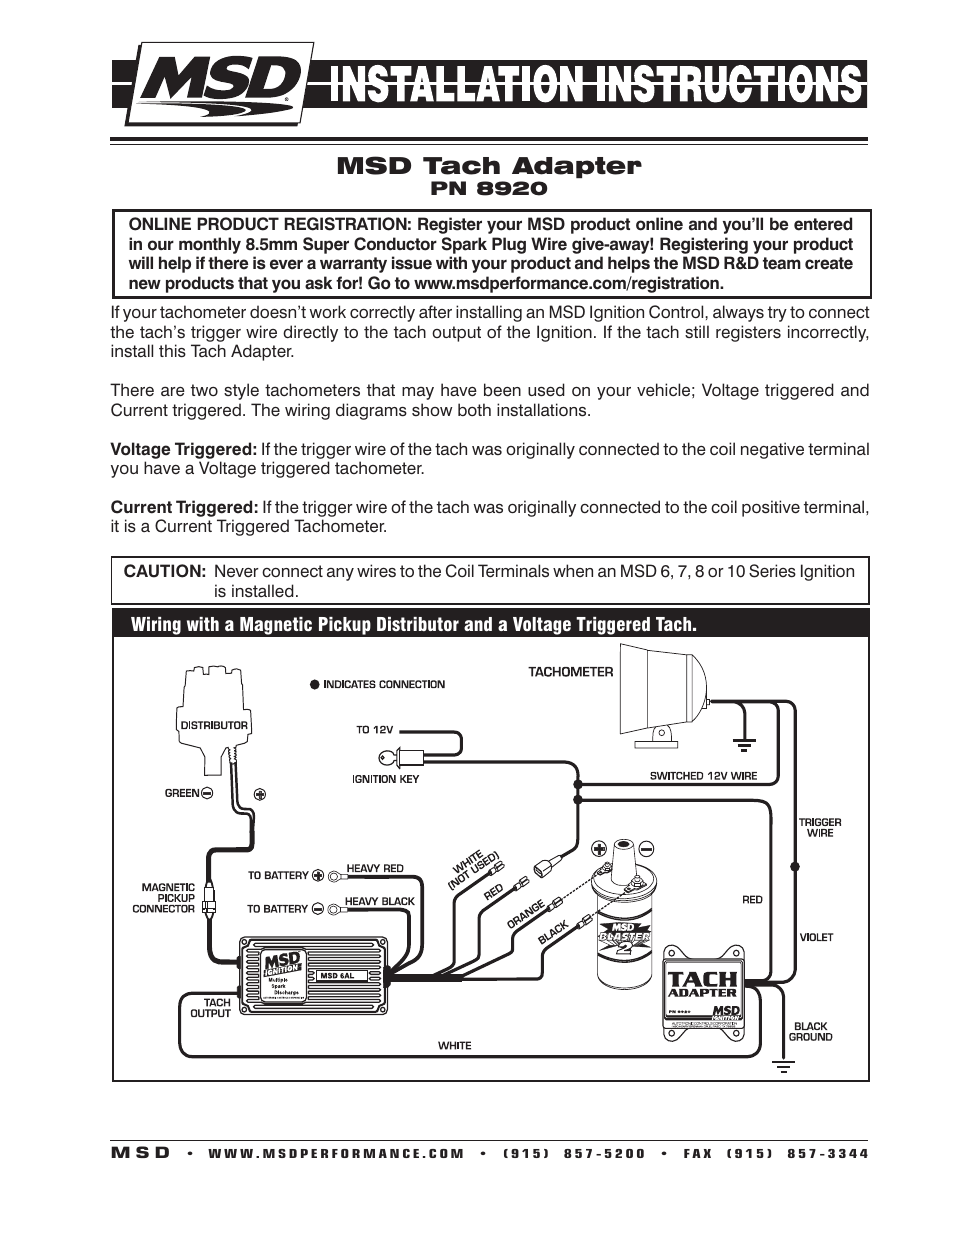 Msd Tach Adapter Wiring Diagram Worksheet And Fieldserver Schematics Diagrams U2022 Rh Parntesis Co Mag